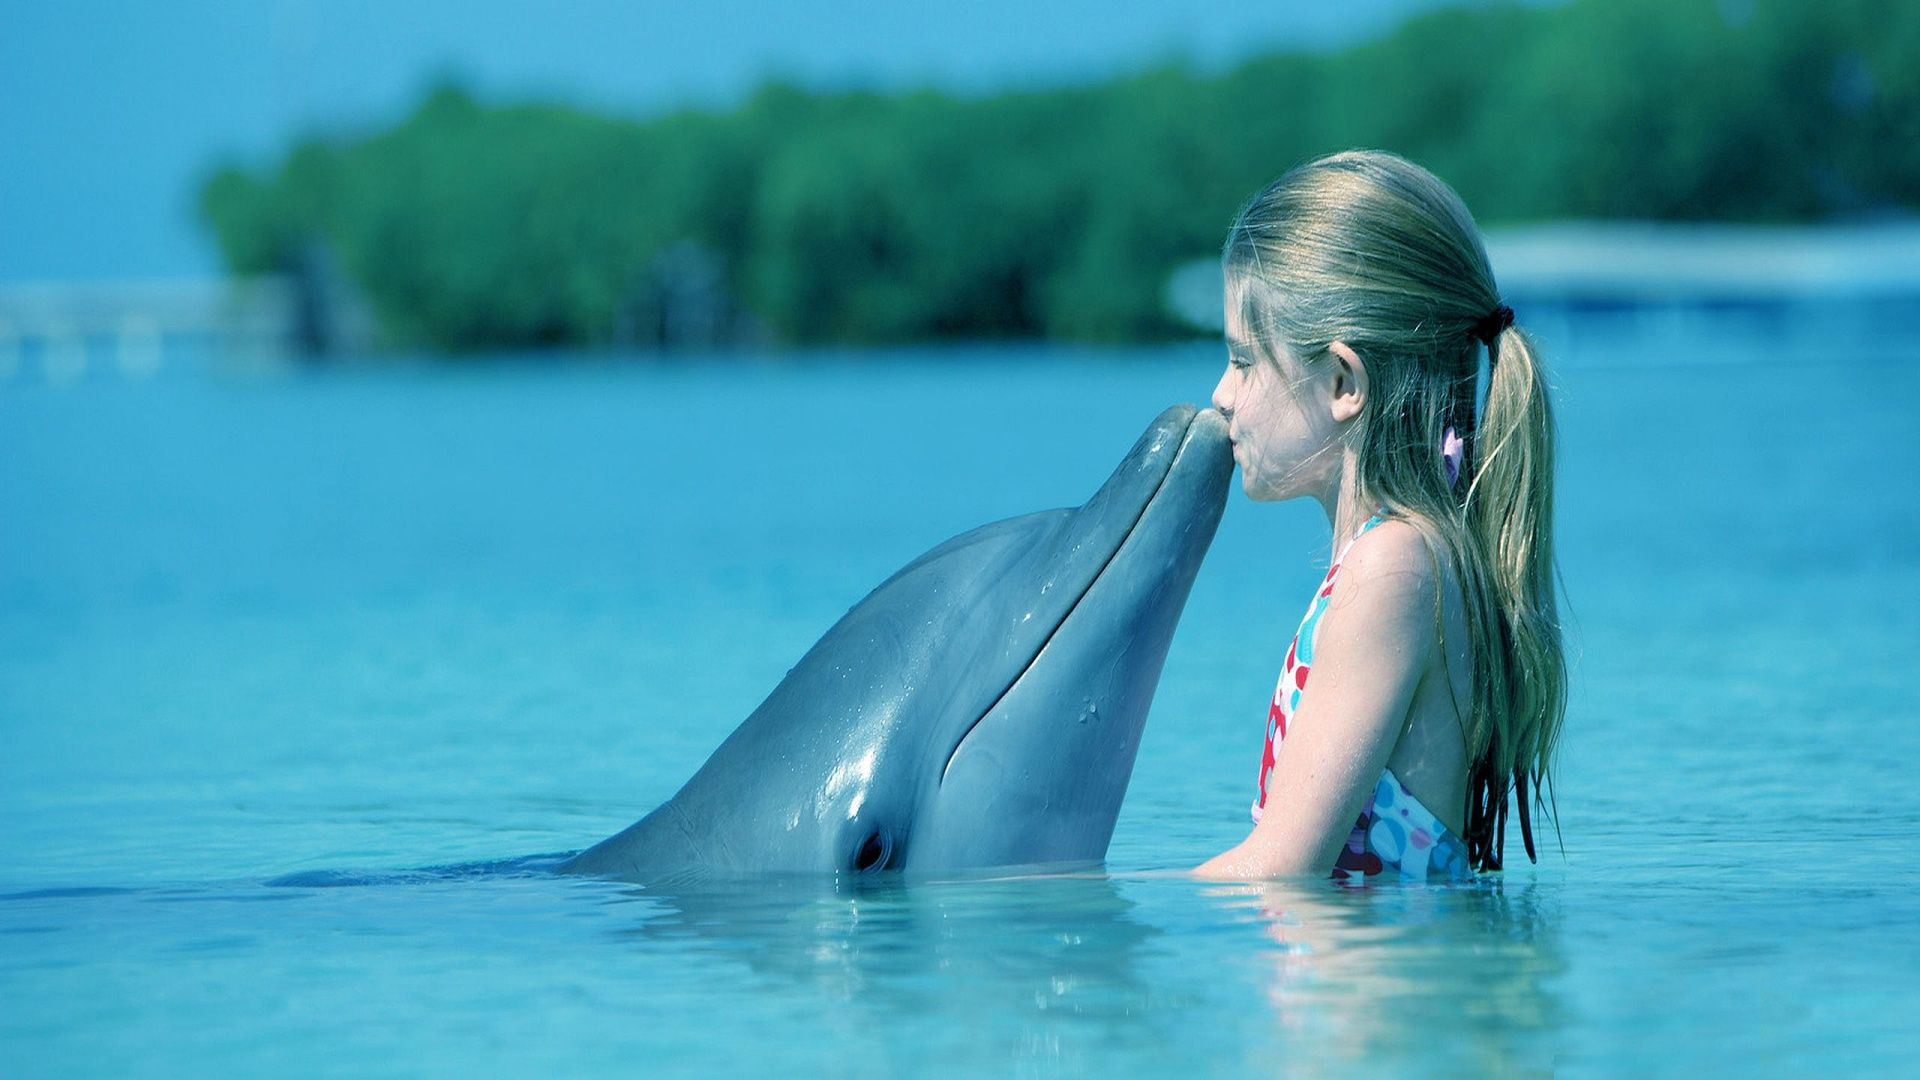 Http Screativeimage Com Data Images Out 1 8766987 Dolphin Jpg Most Beautiful Horses Dolphins Beautiful Horses